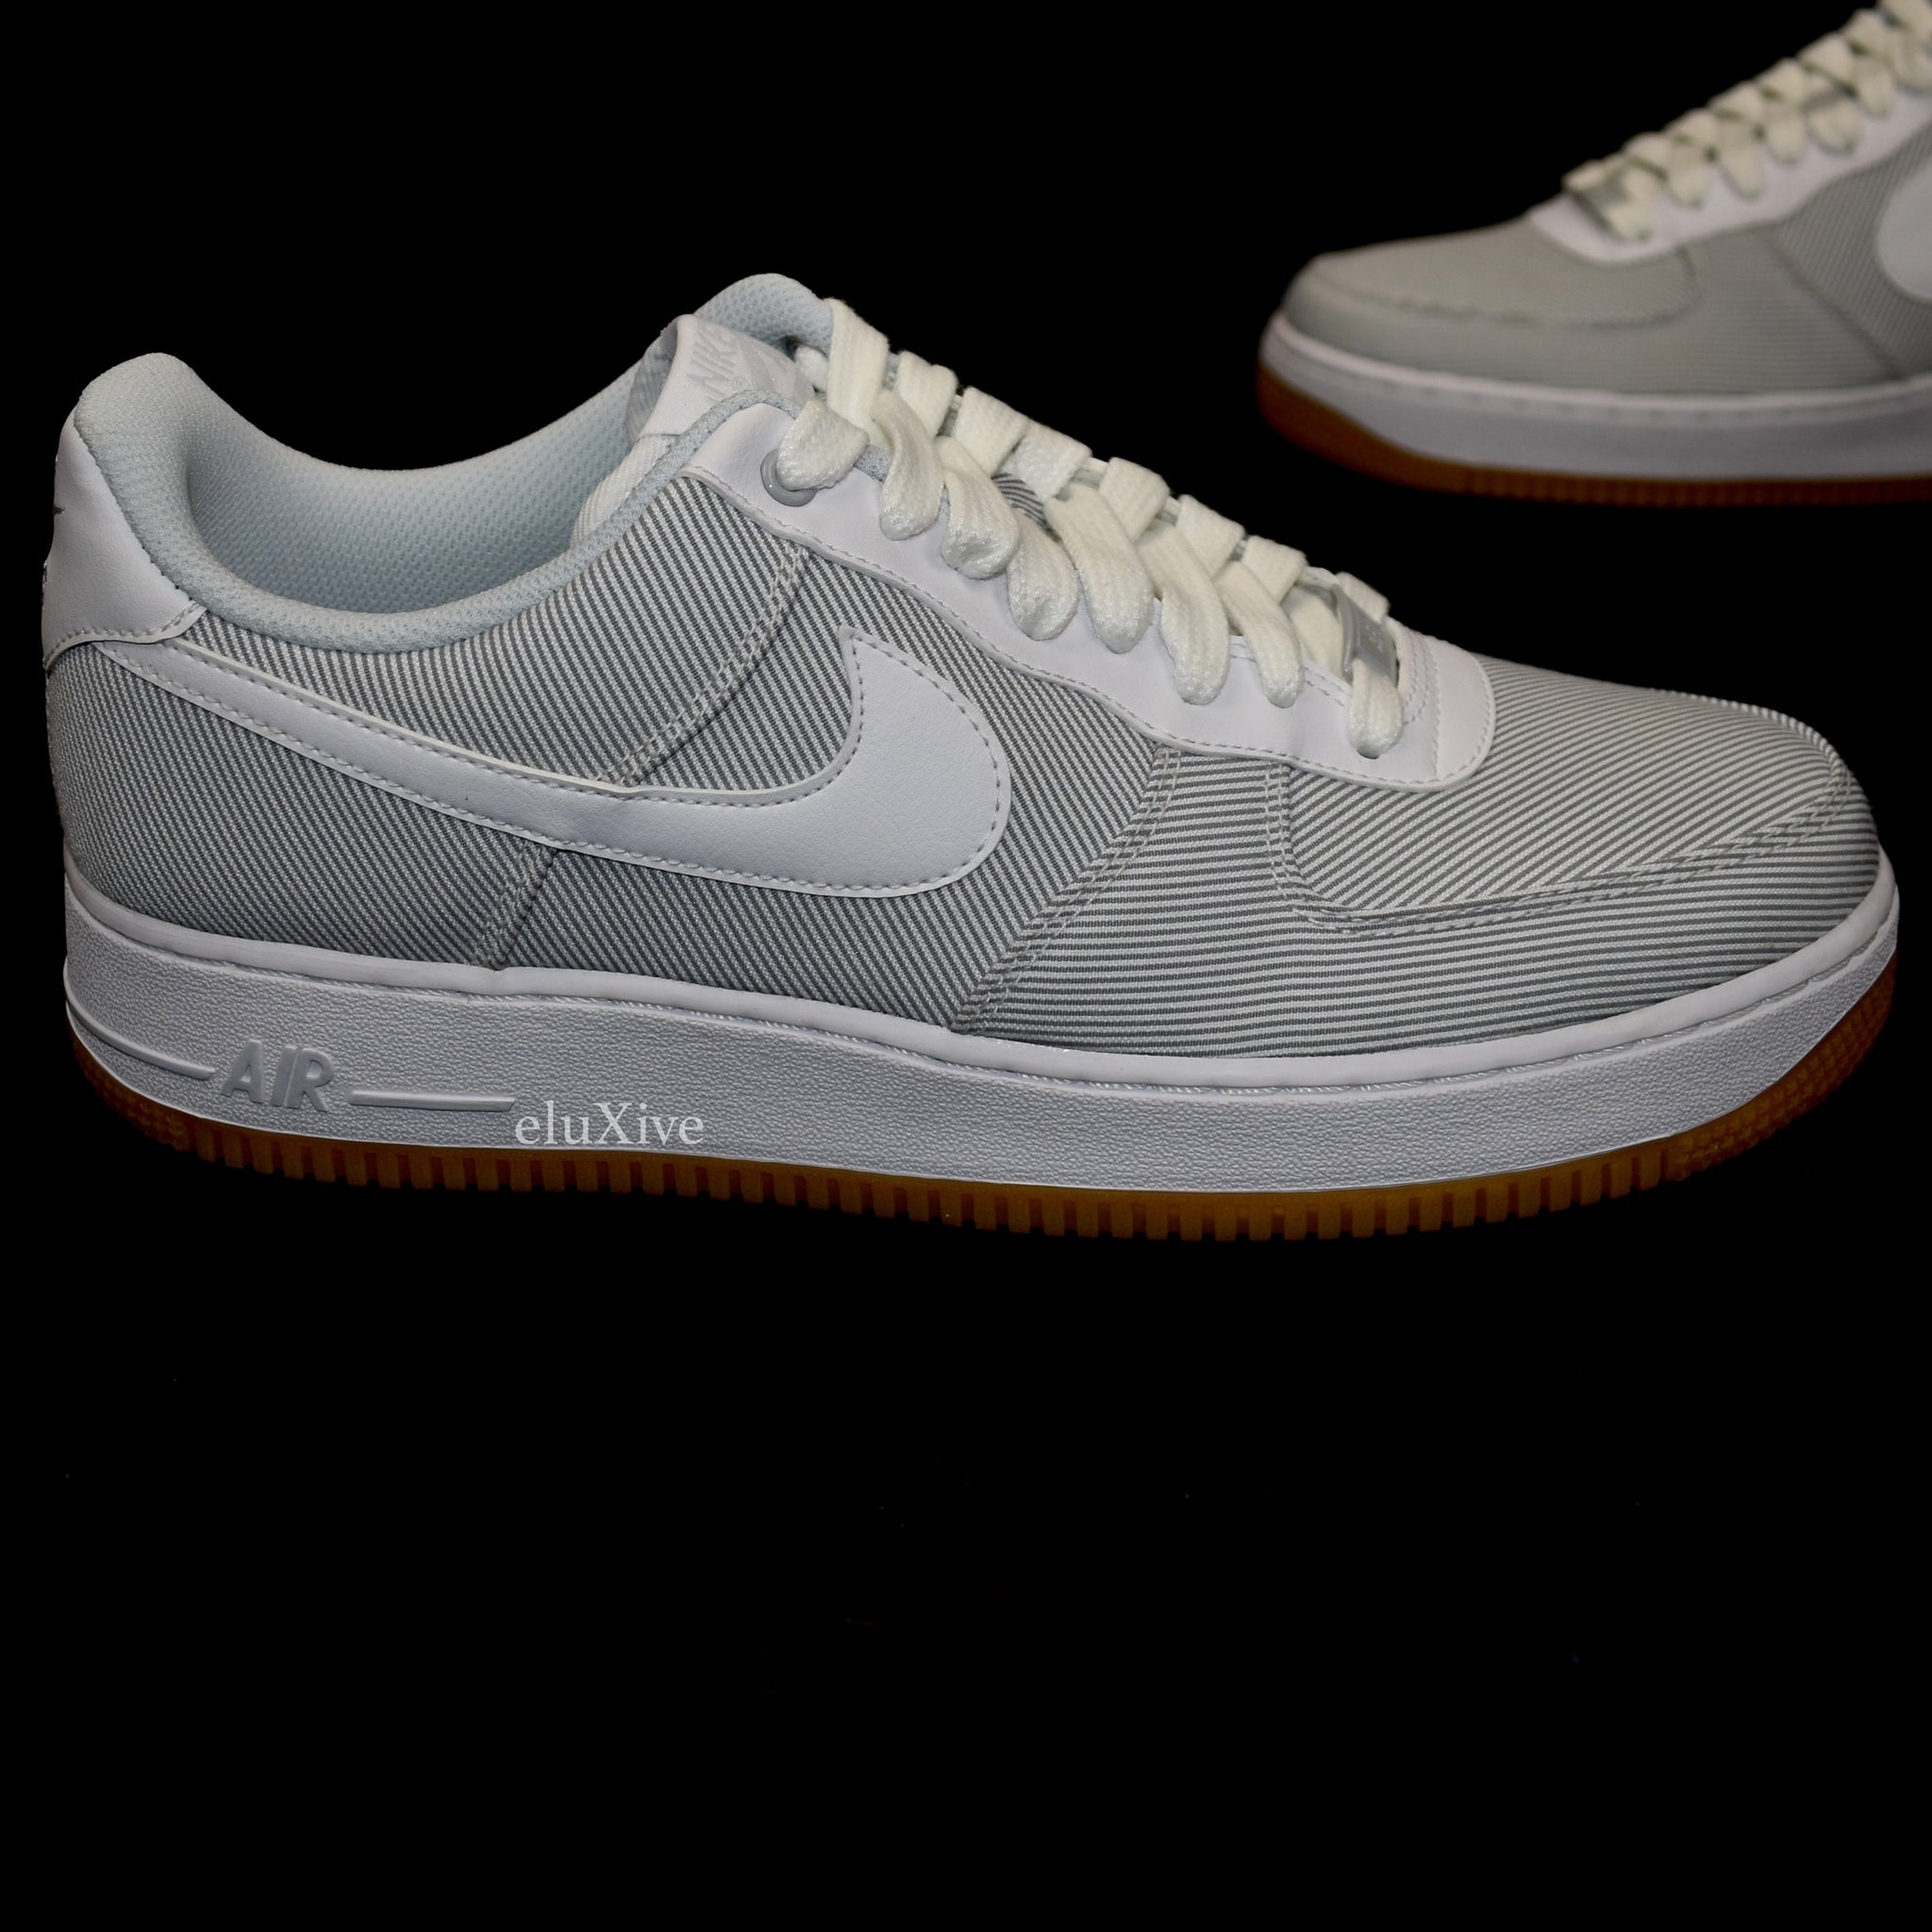 Nike Air Force 1 Low Seersucker Running, Cross Training